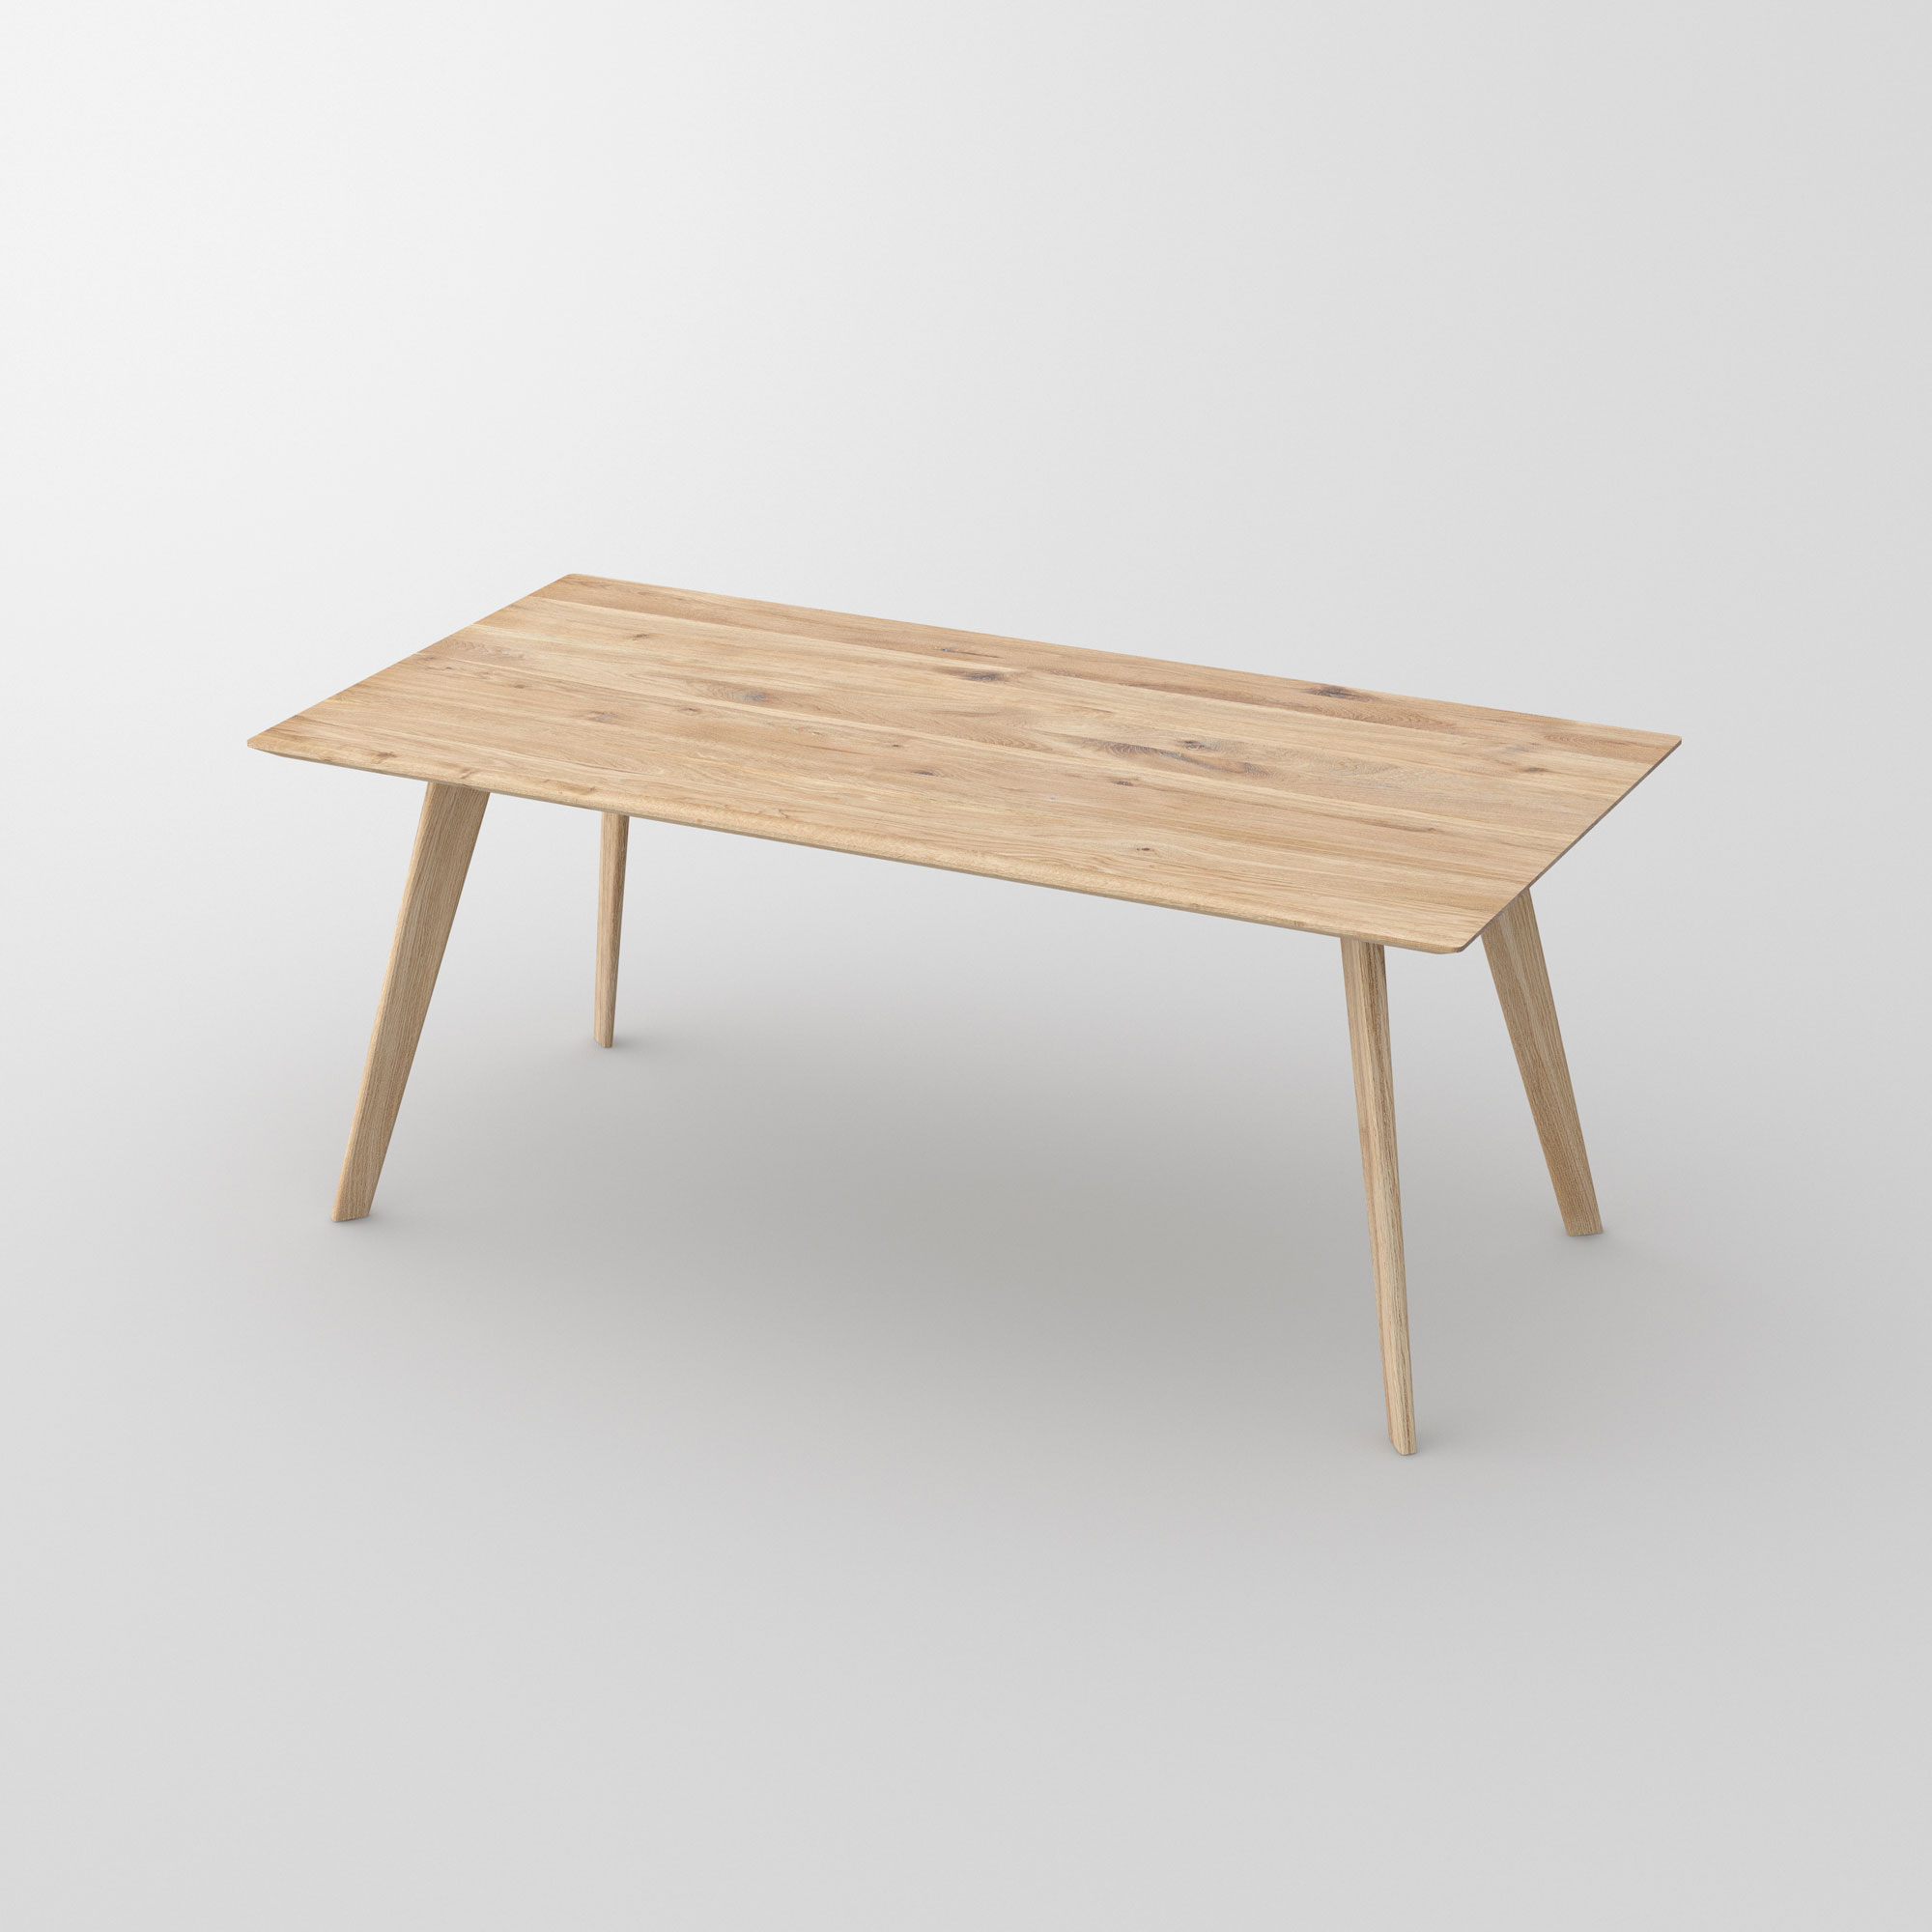 Soft Solid Wood Table CITIUS SOFT cam1 custom made in solid wood by vitamin design